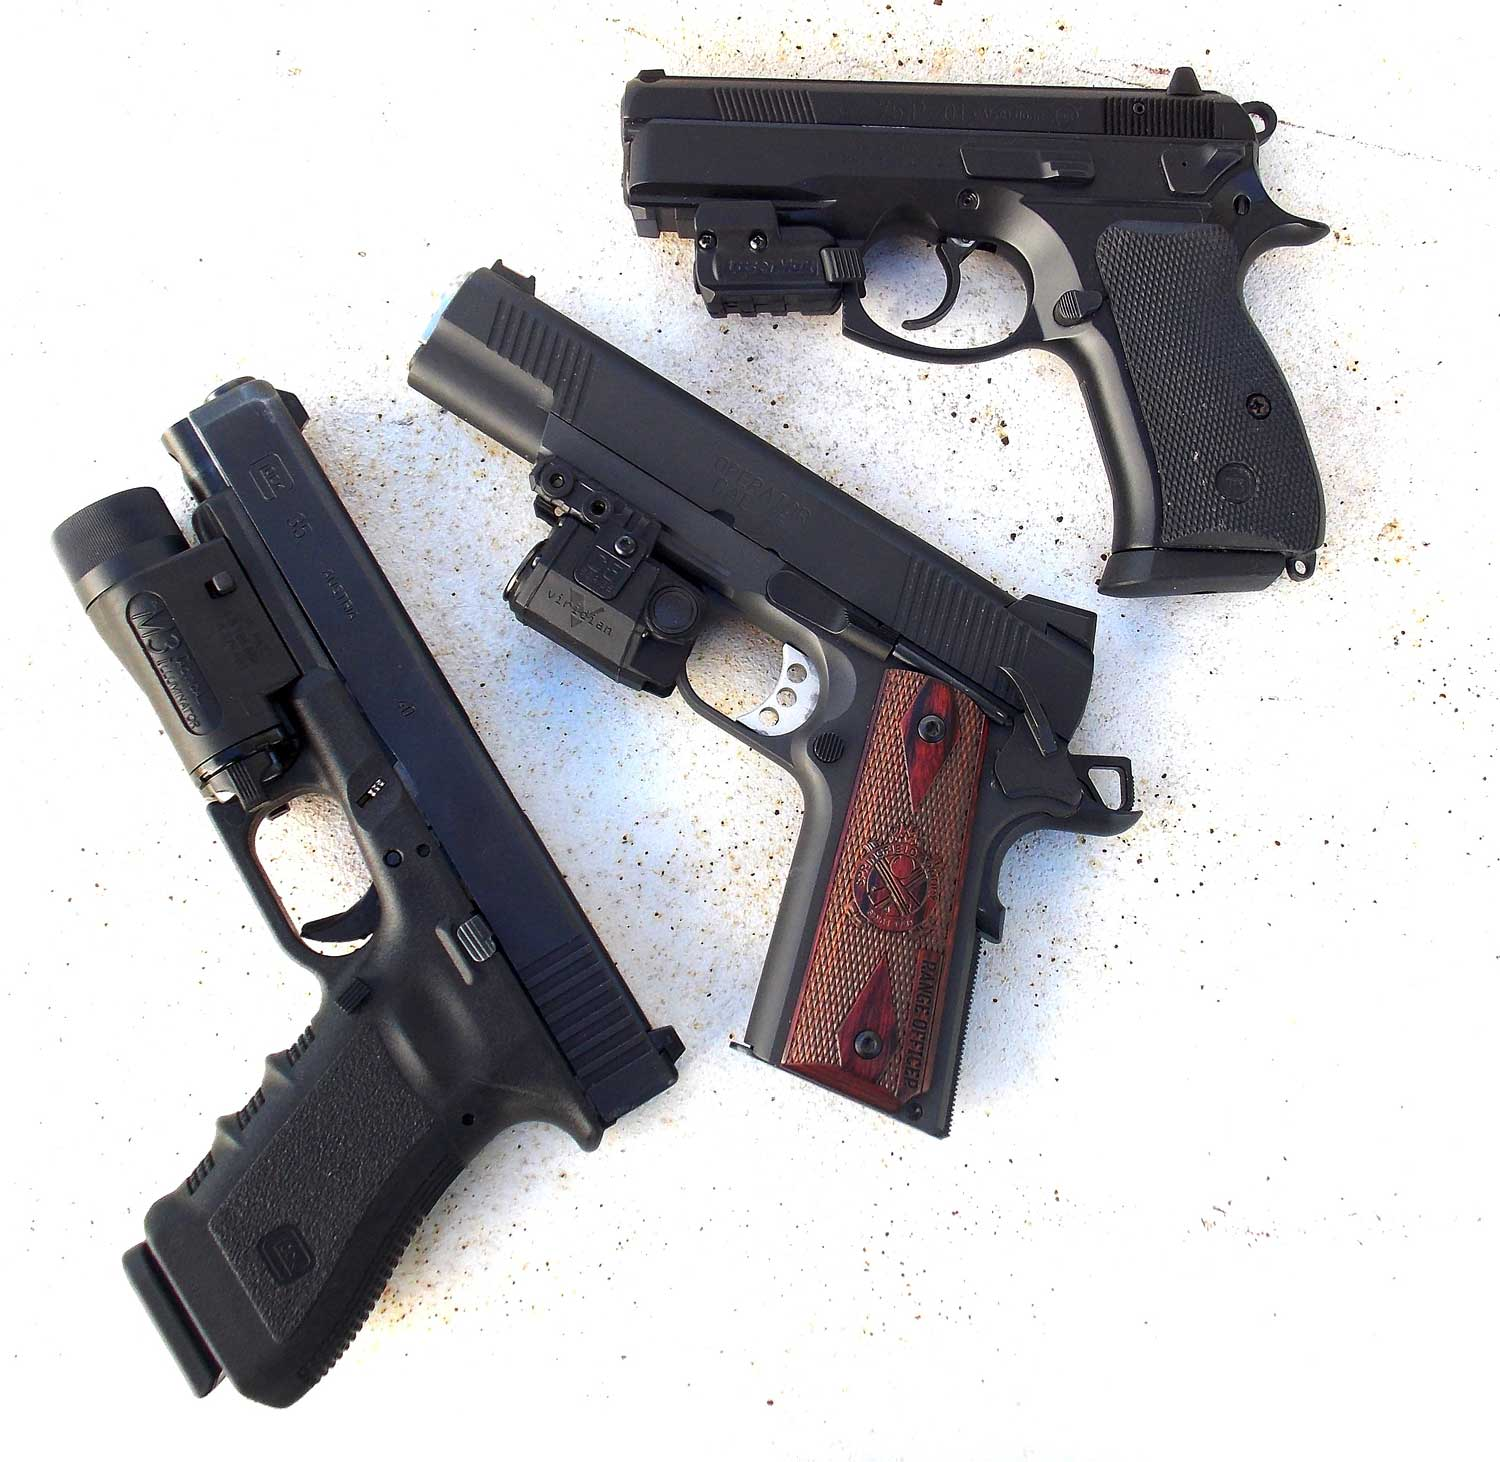 Rail guns top to bottom - CZ with Lasermax laser, Springfield with Viridian light and Glock with Insights light.